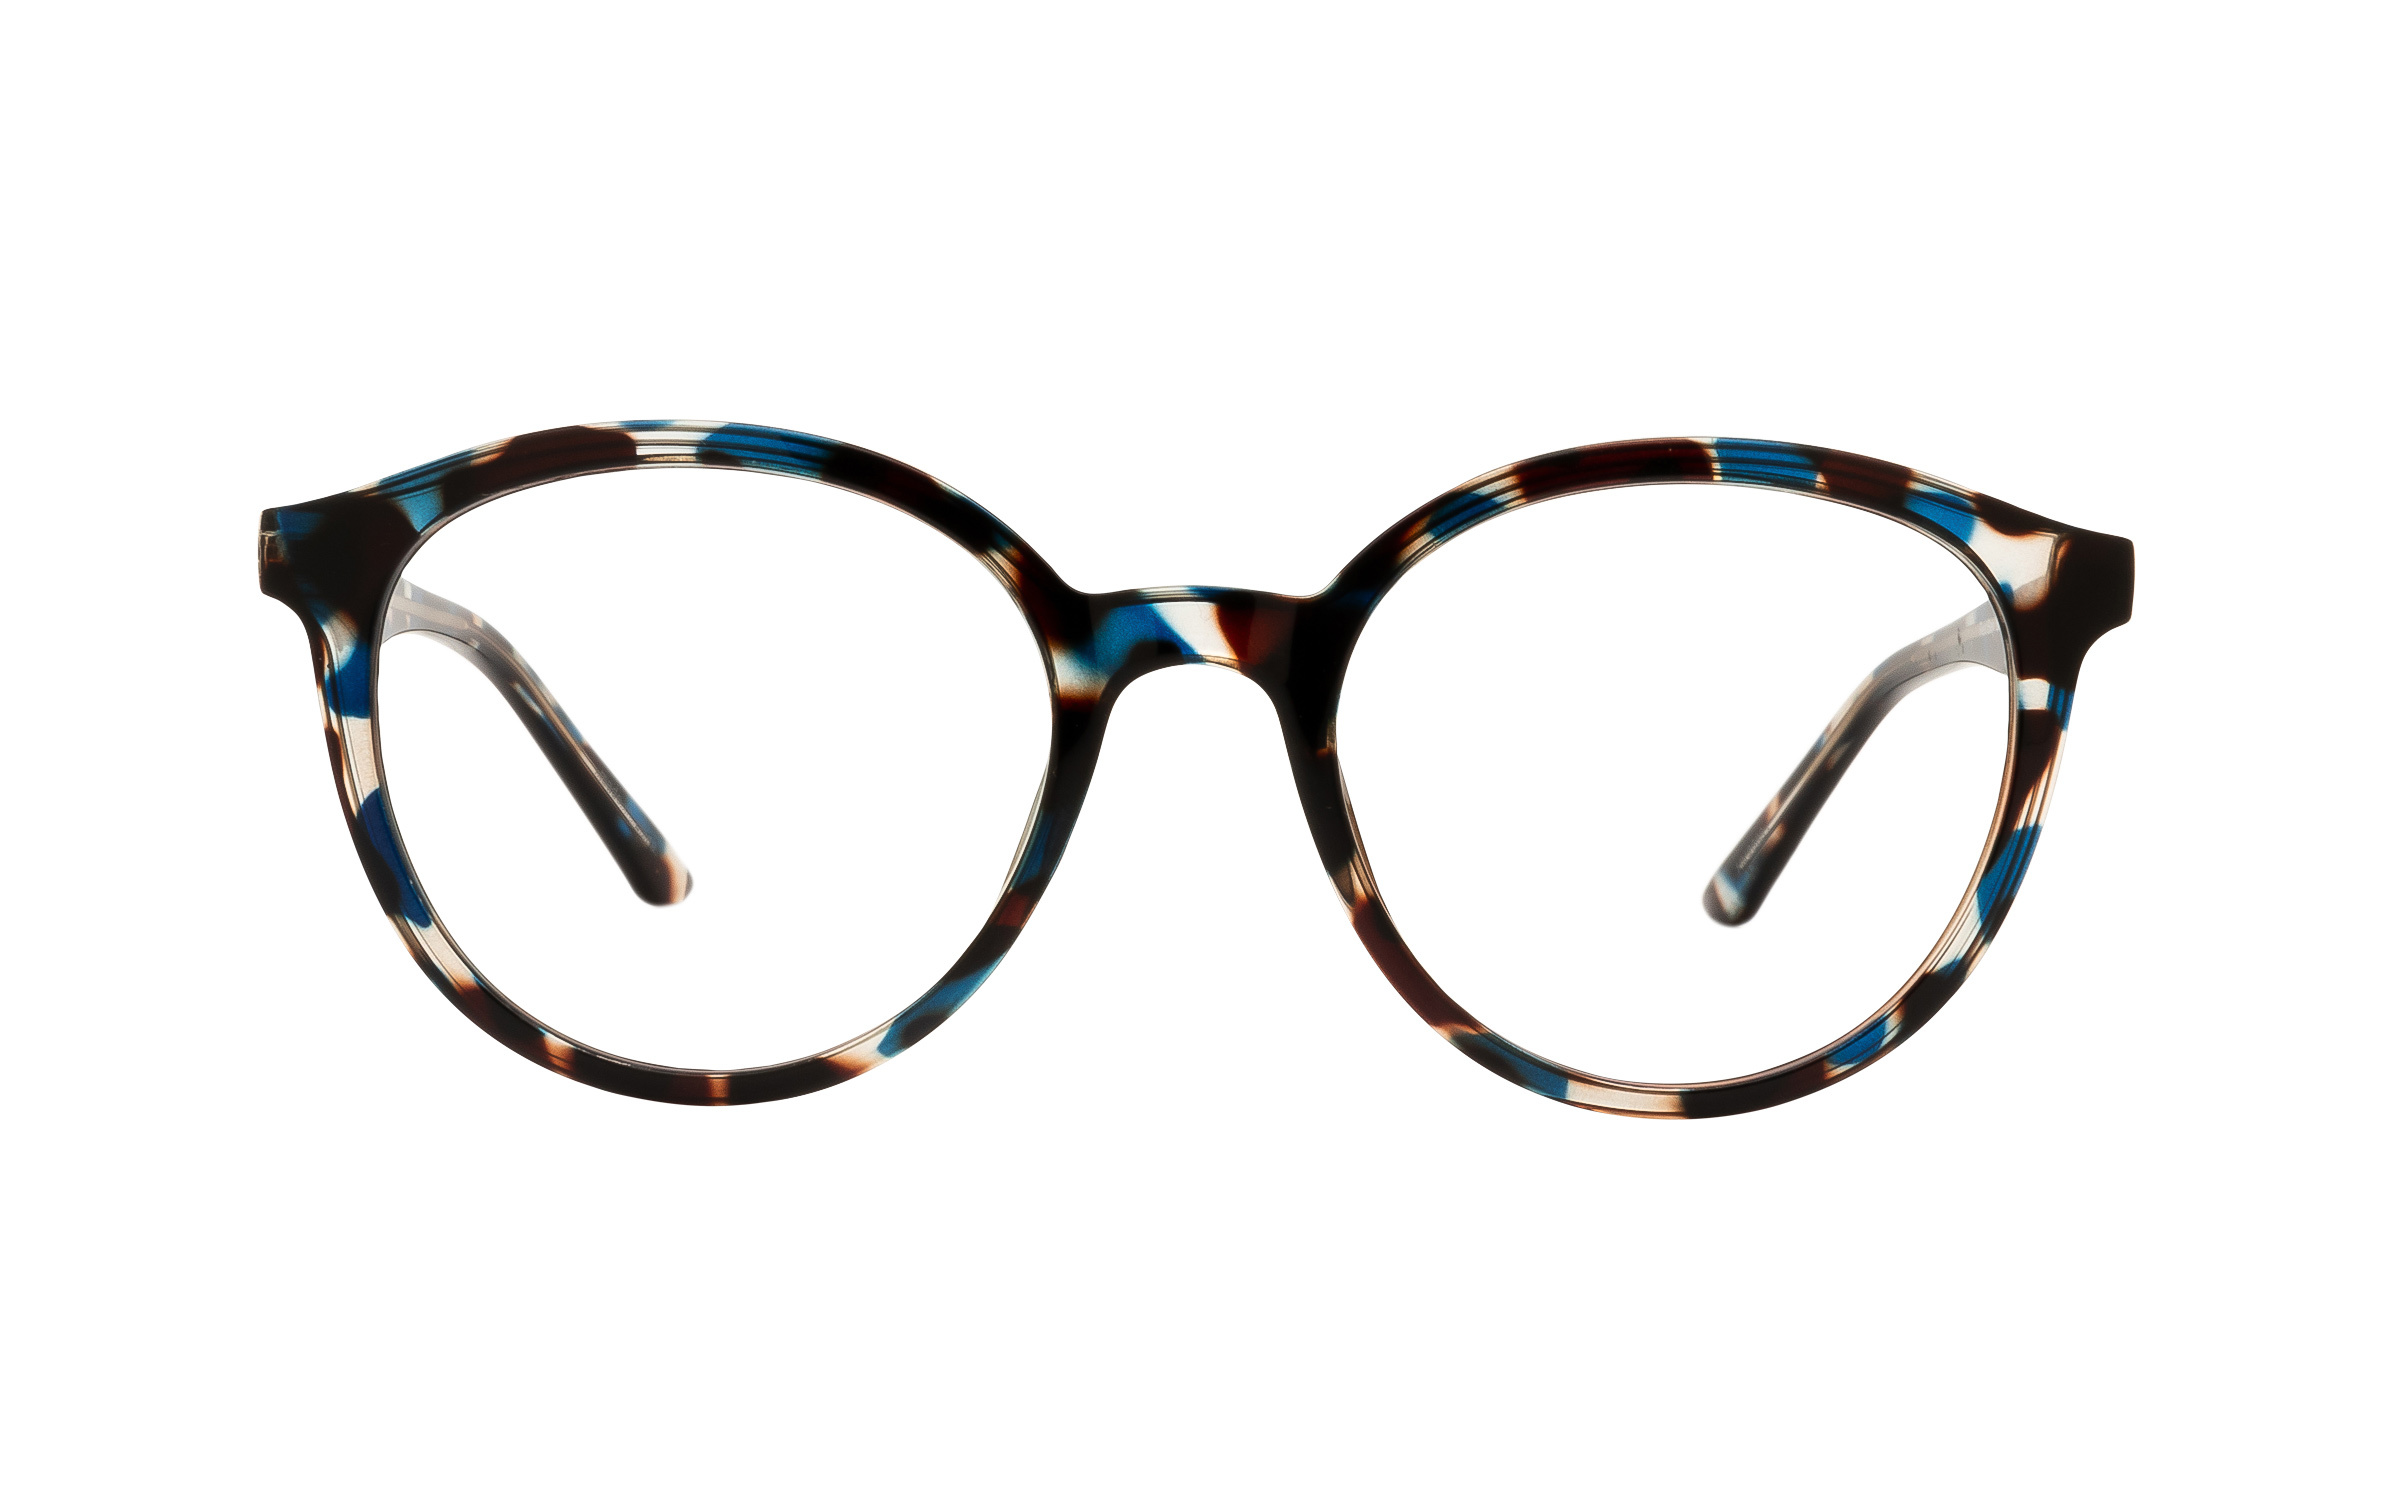 Clearly Basics Red Bay CLS090 C02 (51) Eyeglasses and Frame in Blue/Tortoise - Online Coastal